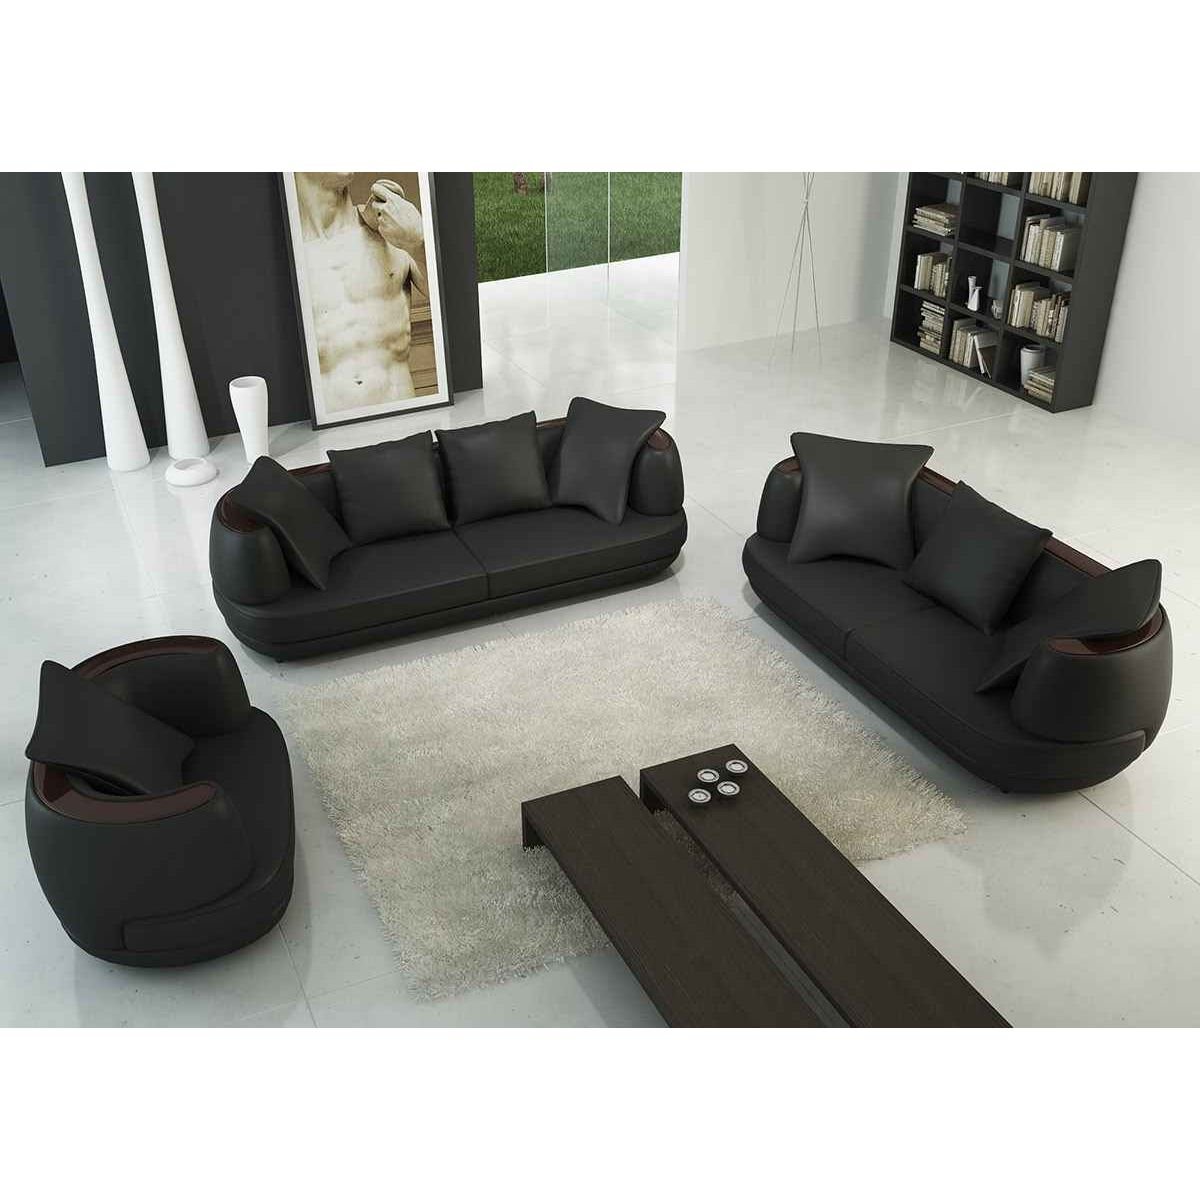 Deco in paris ensemble canape 3 2 1 places noir en cuir for Canape 2 places noir